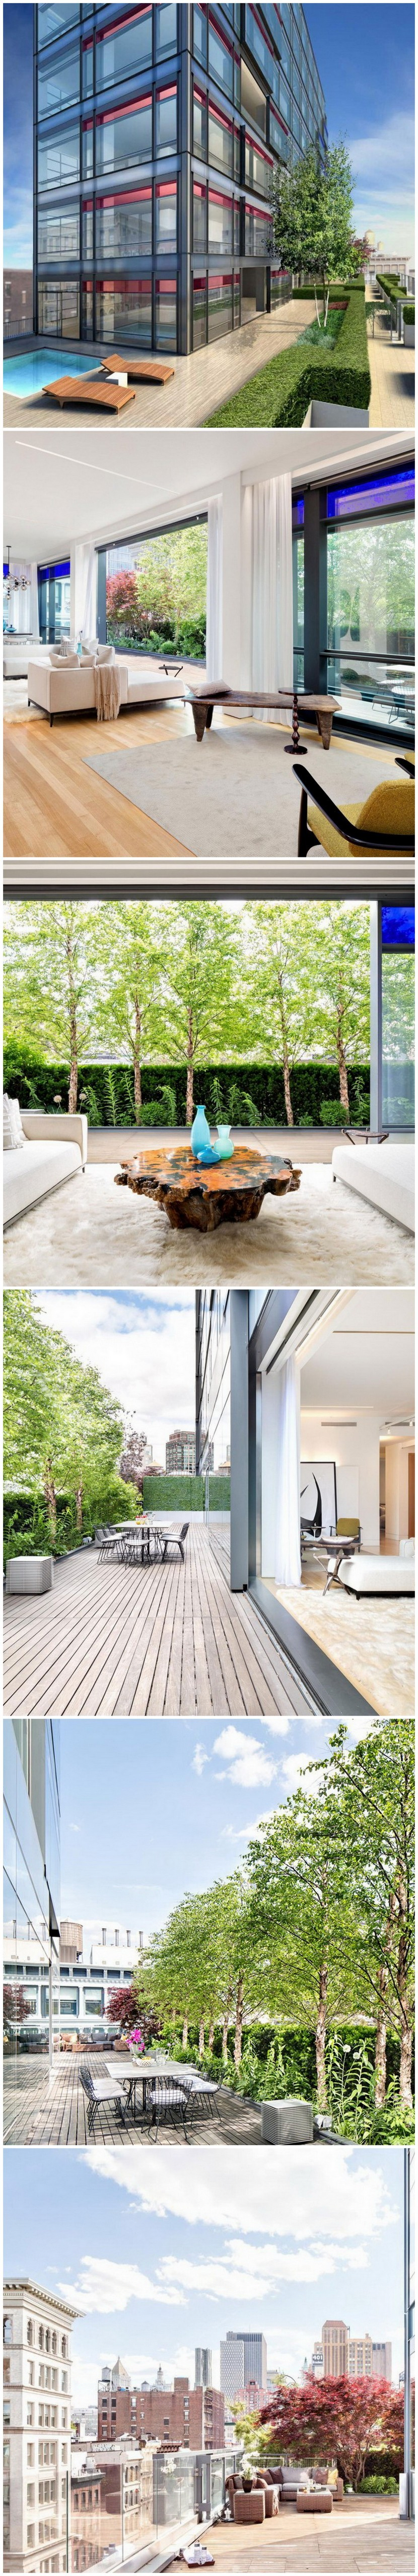 Elegant SoHo NY Penthouse - The Jewel of 40 Mercer